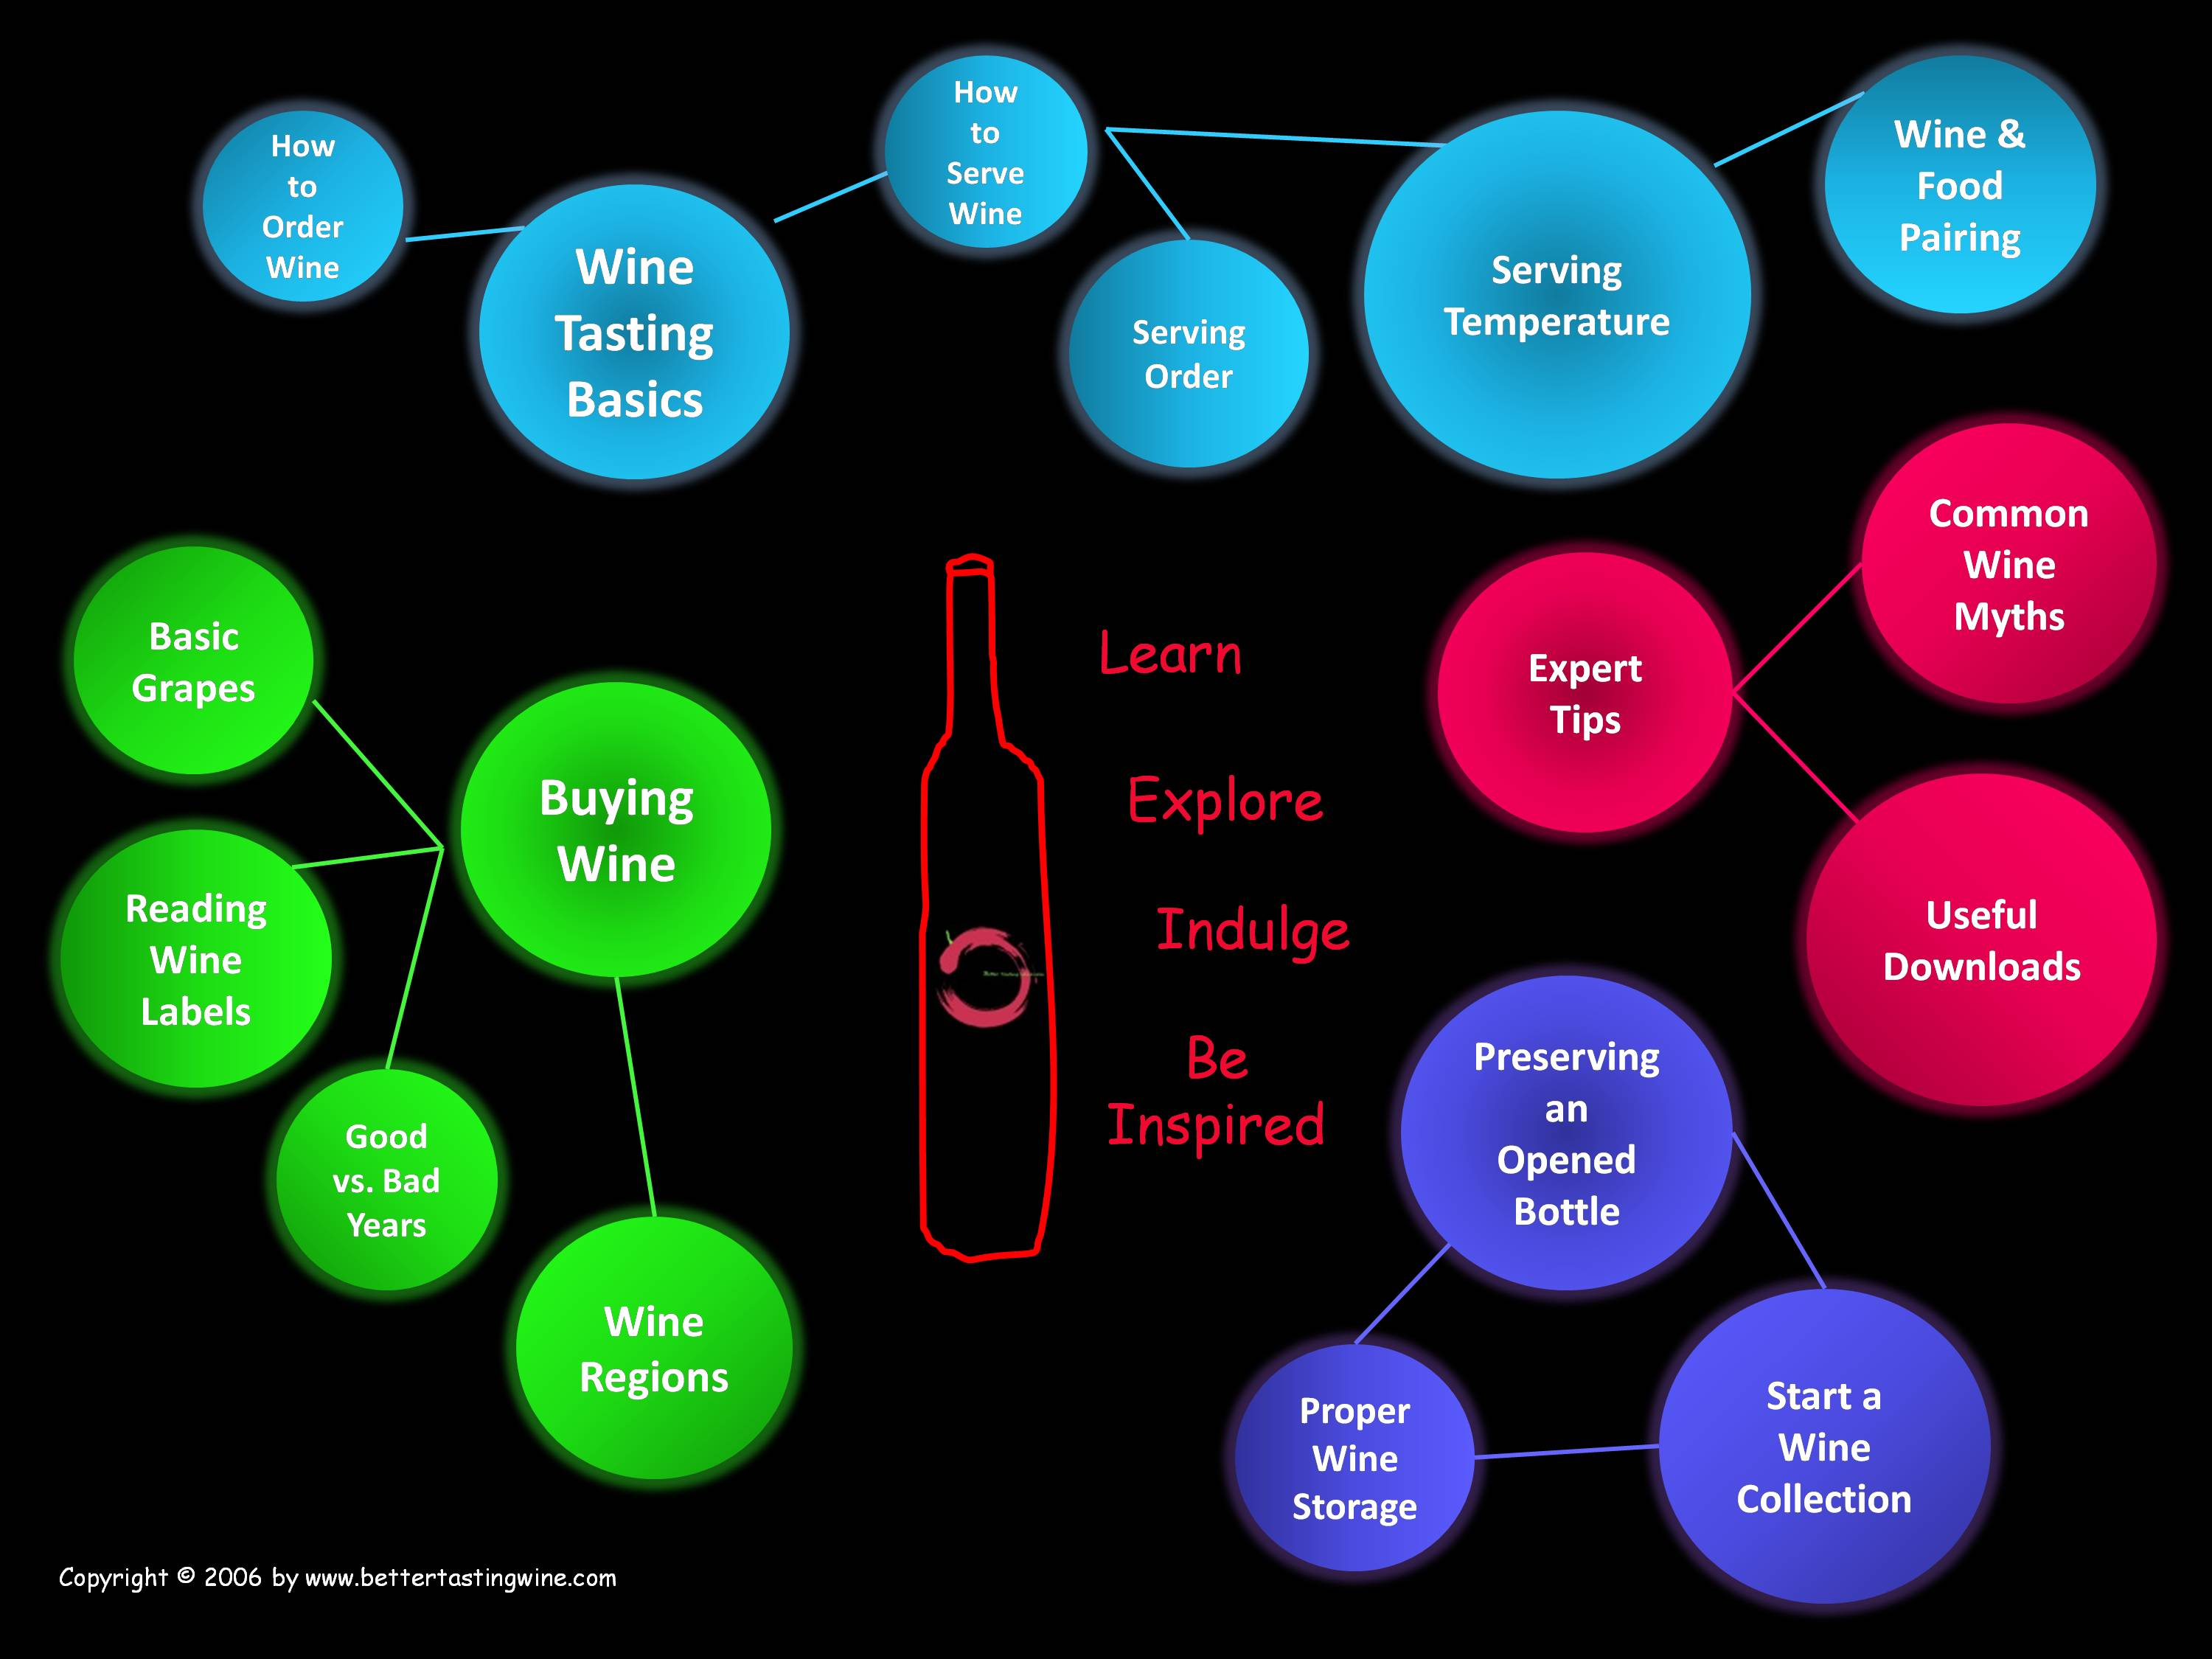 BetterTastingWine Wine Guide